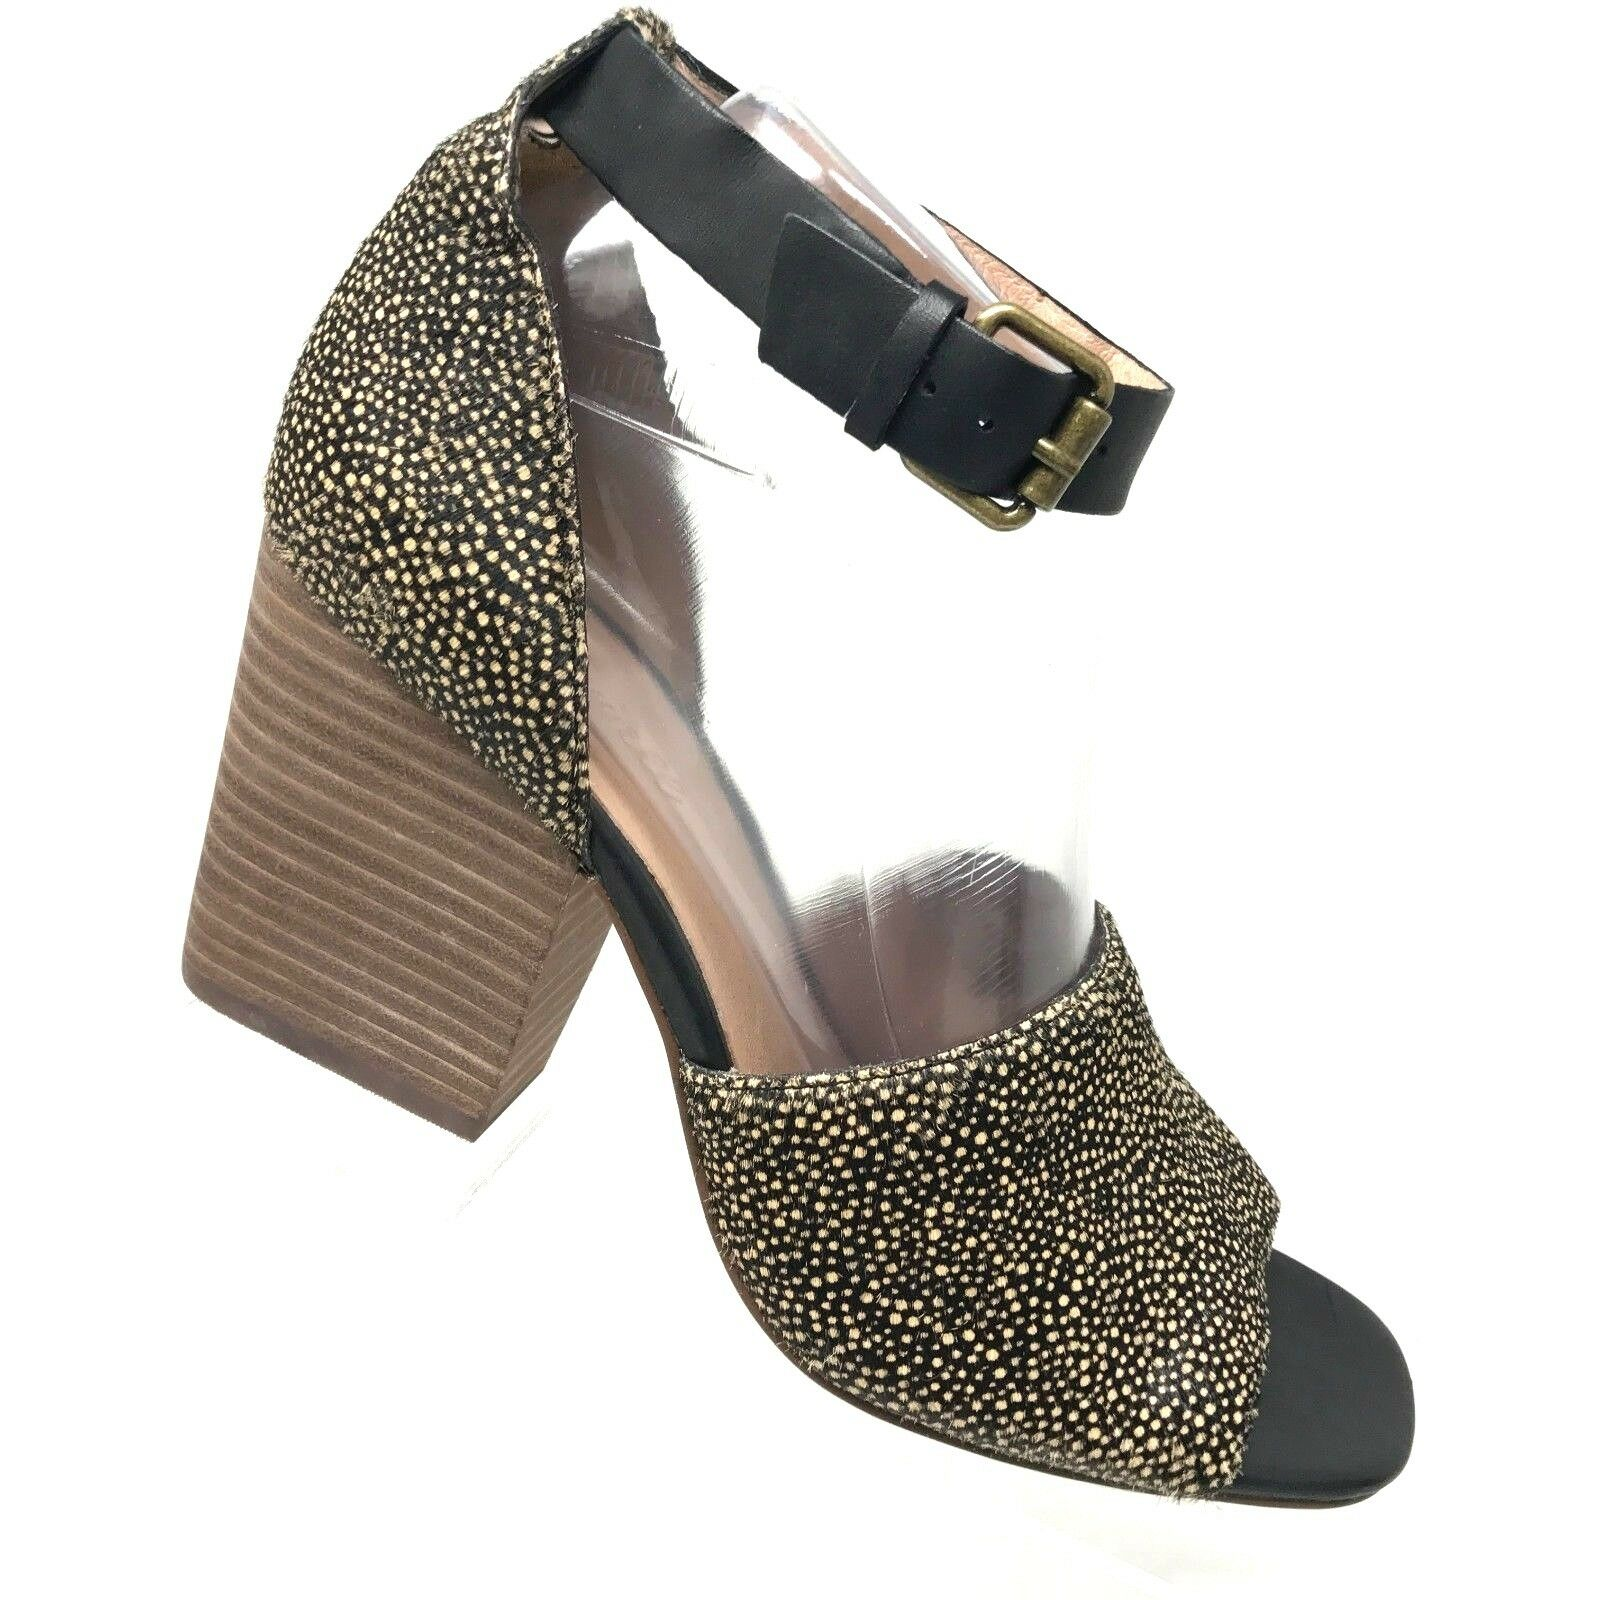 Madewell ALENA Sandal Spotted Calf Hair Stacked Heel Ankle Ankle Ankle Strap damen Größe 8 8c1d20